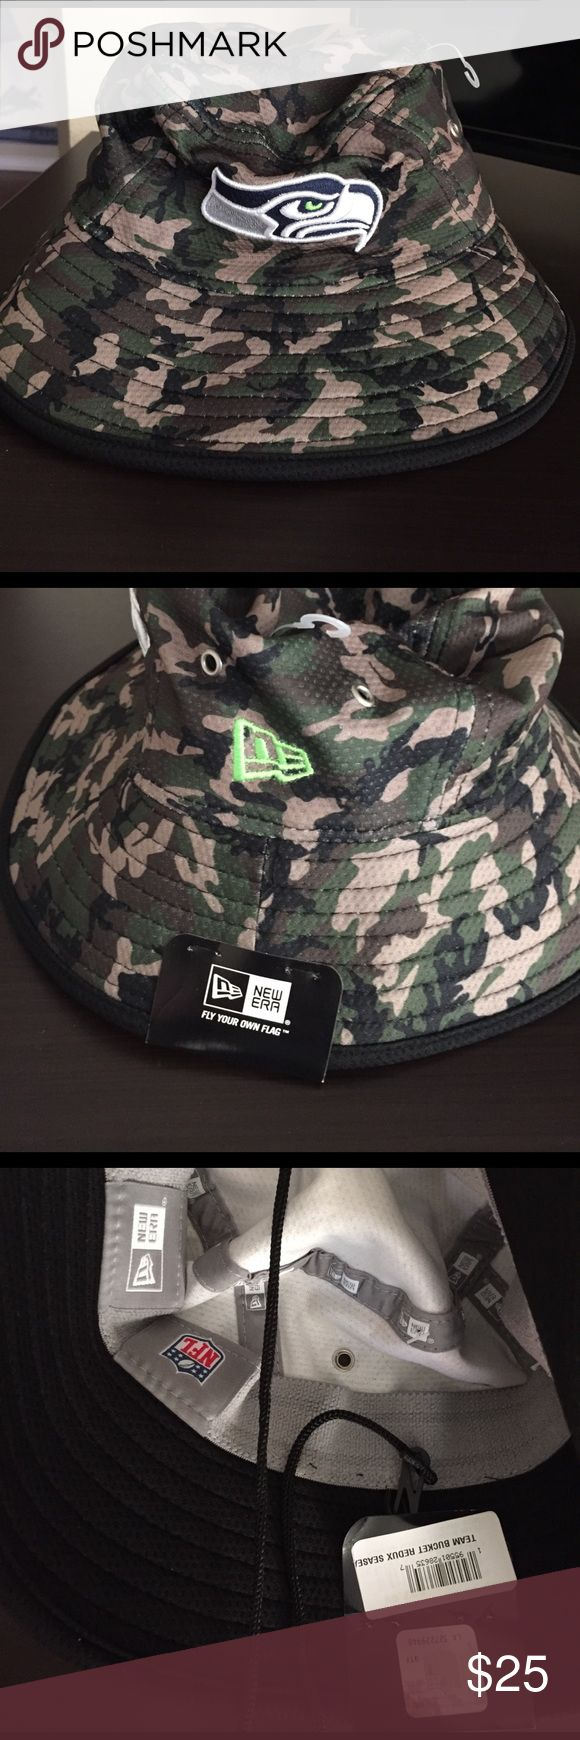 New Era Seattle Seahawks camo bucket hat🏈 Brand new unisex new era camo Seattle Seahawks bucket hat, also have Indianapolis colts one New Era Other